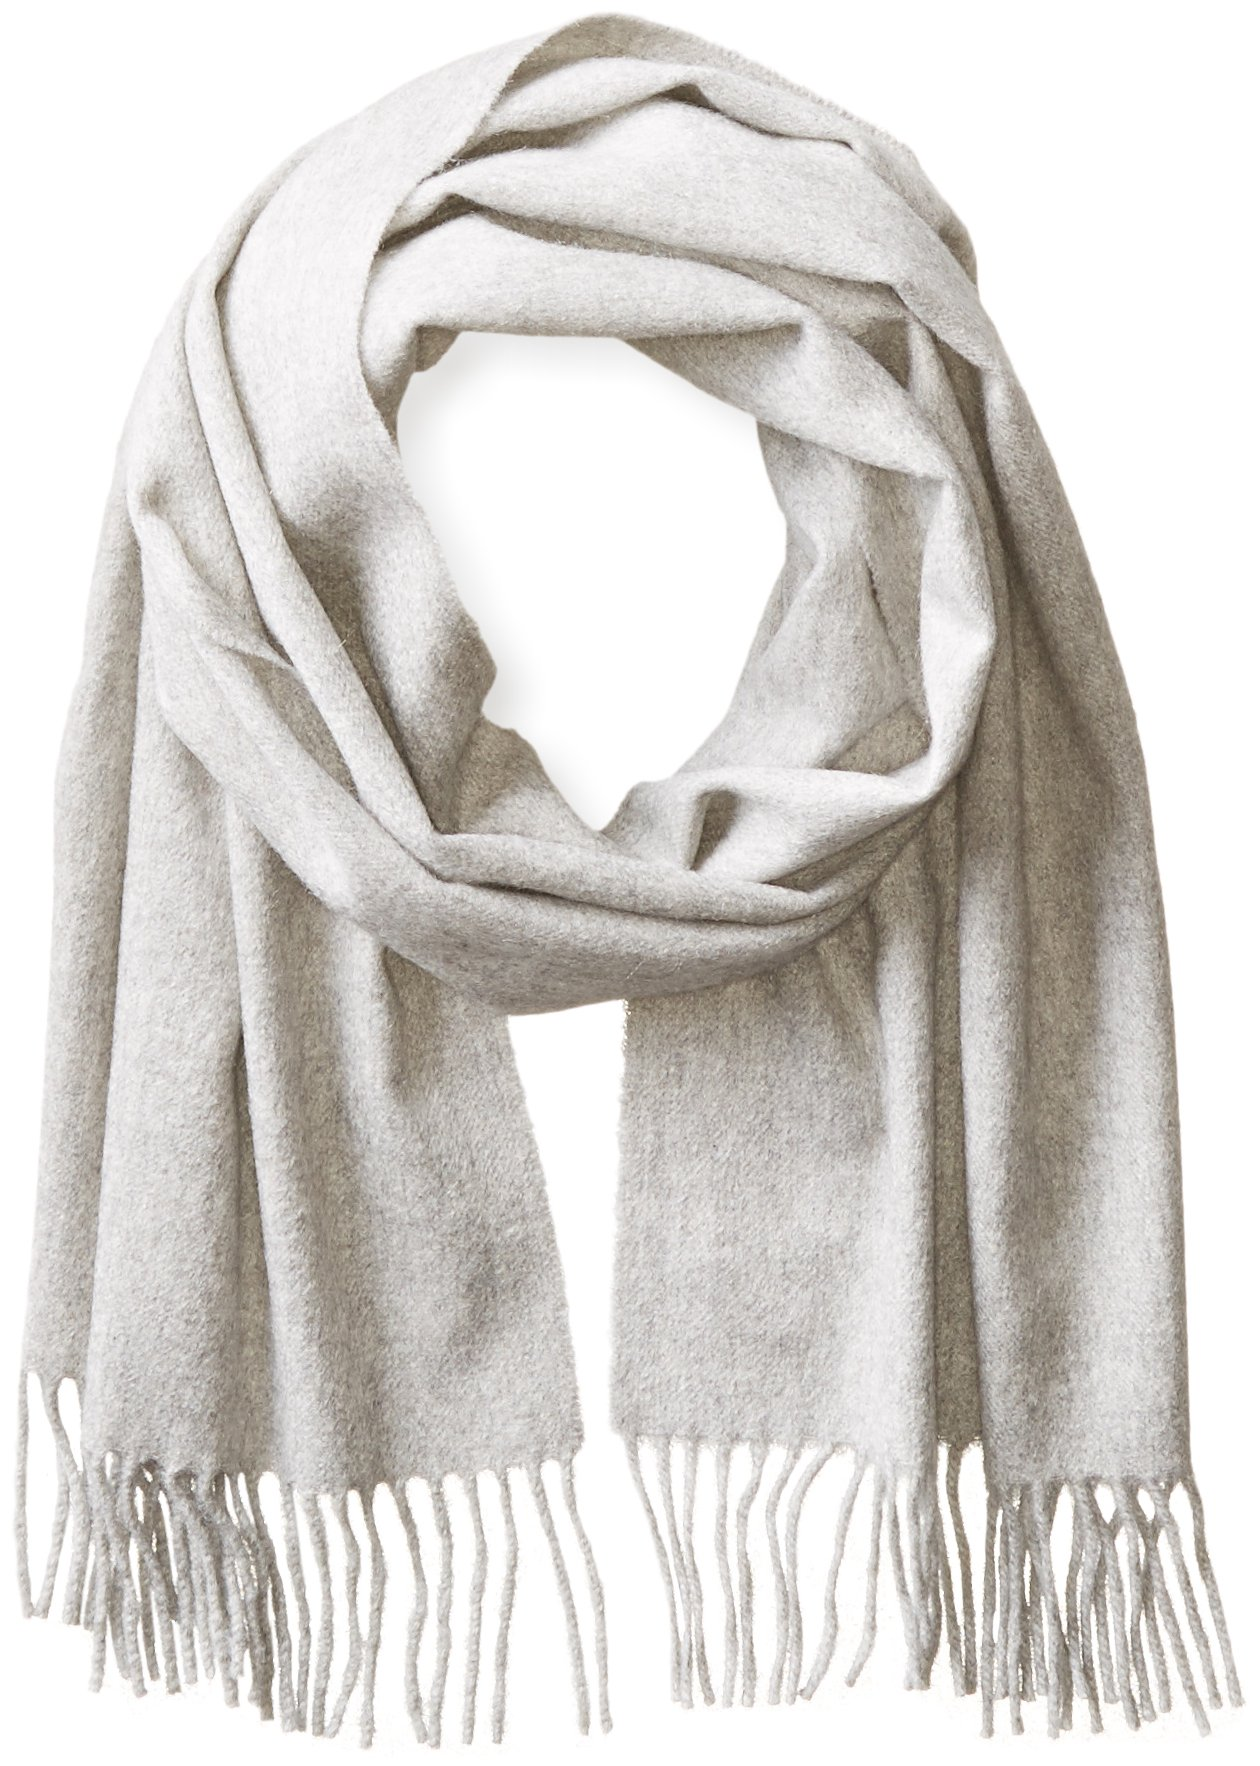 Phenix Cashmere Men's Solid Scarf, Griffin, One Size